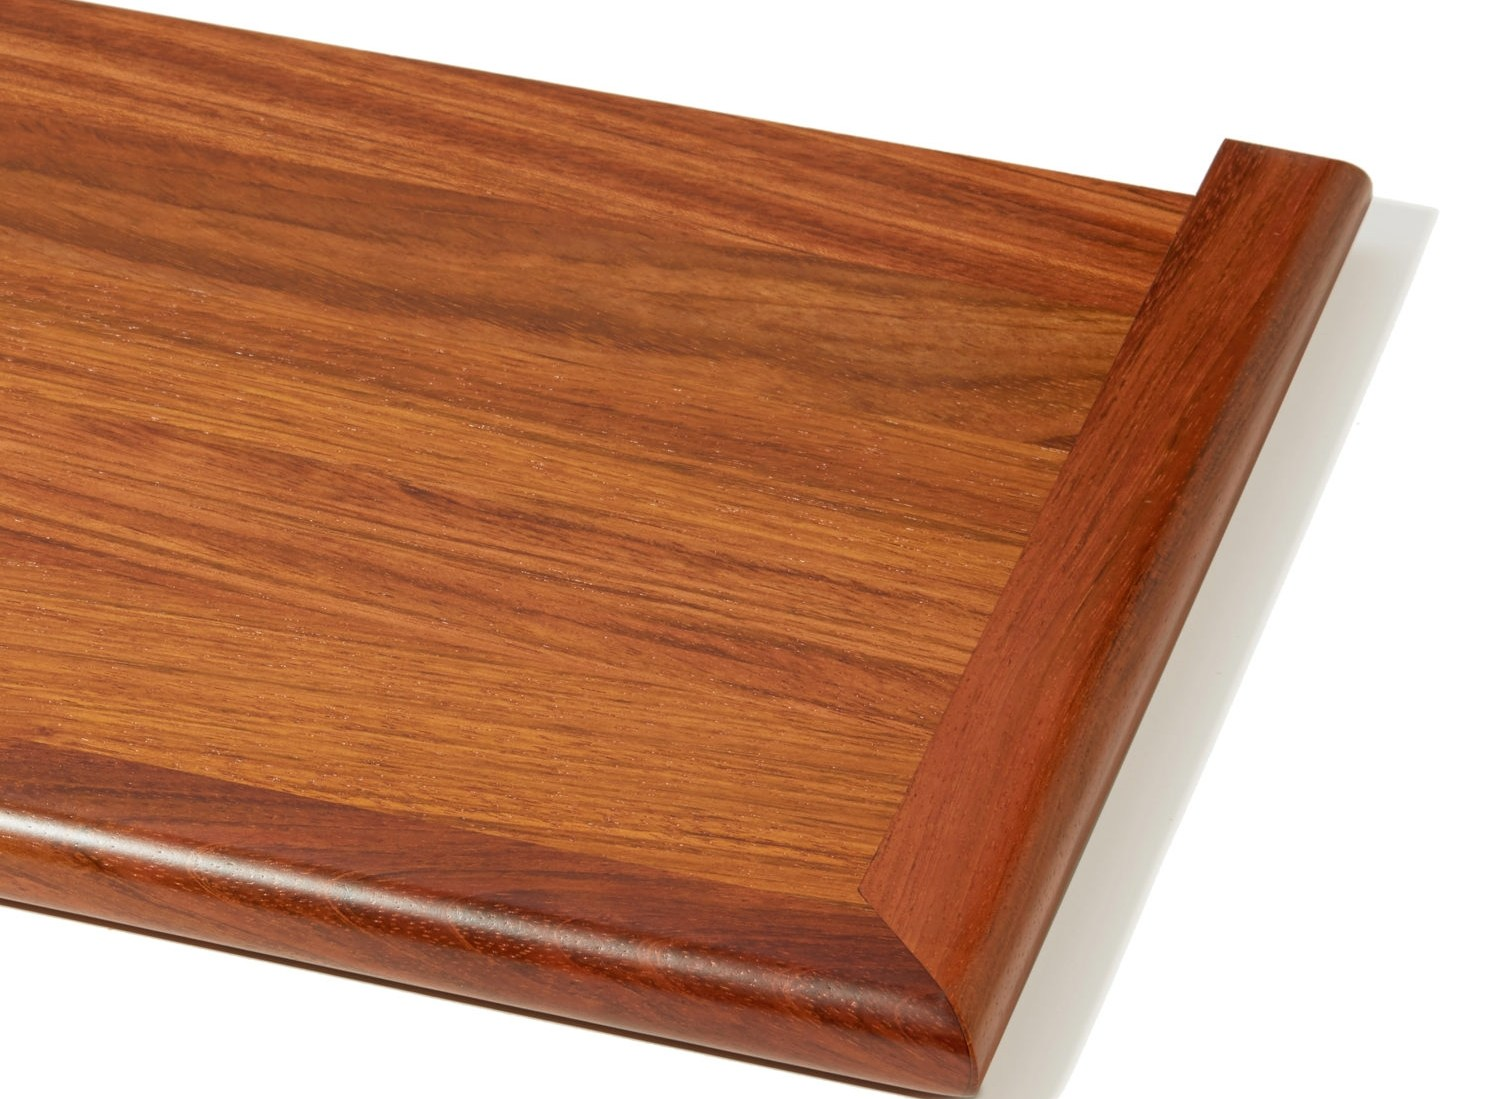 8070 Stair Treads Stairsupplies™ | Solid Wood Stair Treads | Stairway | Commercial | Standard Length 48 | Domestic Timber Stair | Stainless Steel Anti Slip Stair